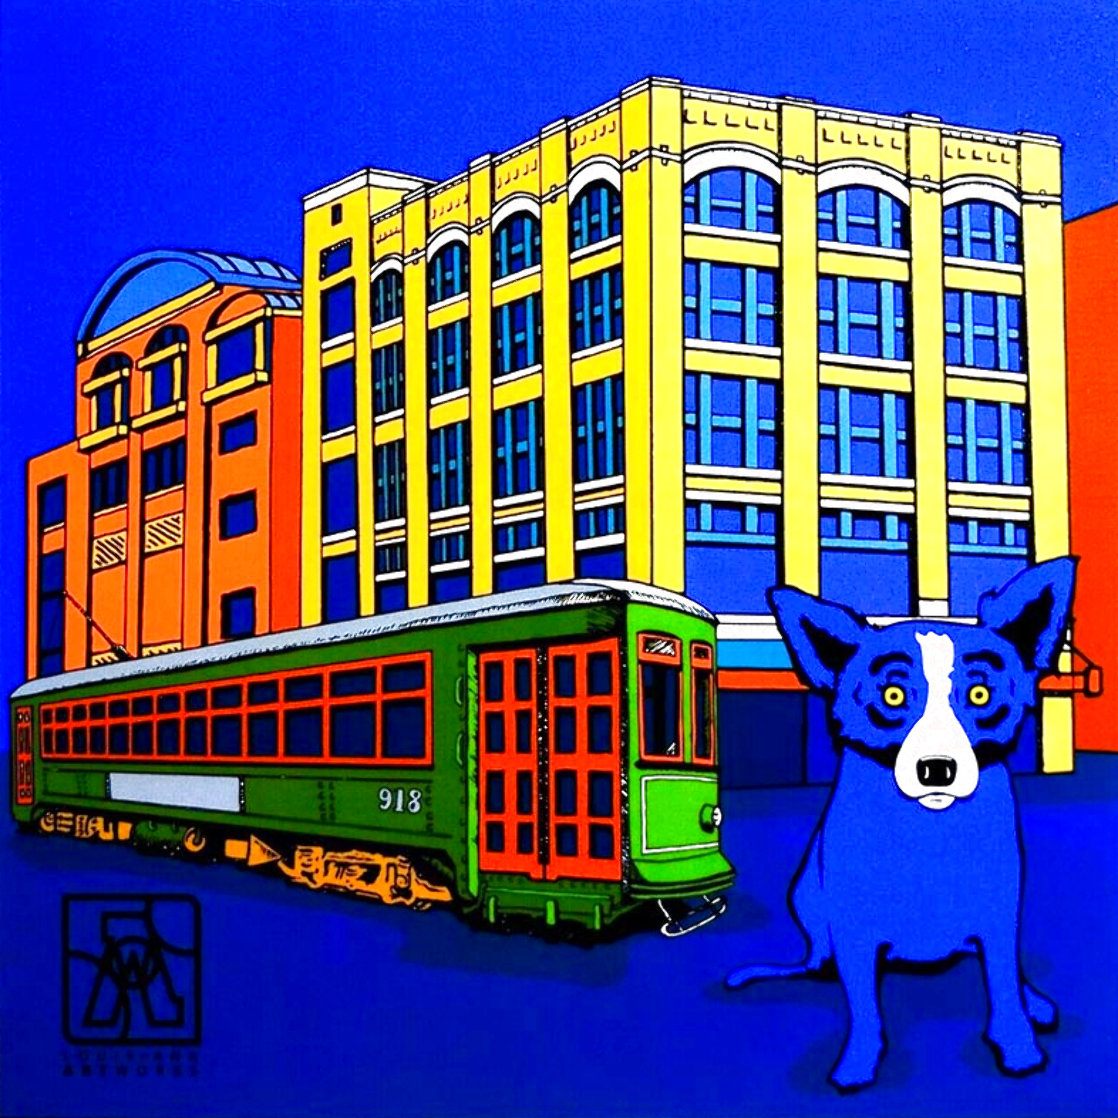 Louisiana Blue Dog 2003  (New Orleans) Limited Edition Print by Blue Dog George Rodrigue